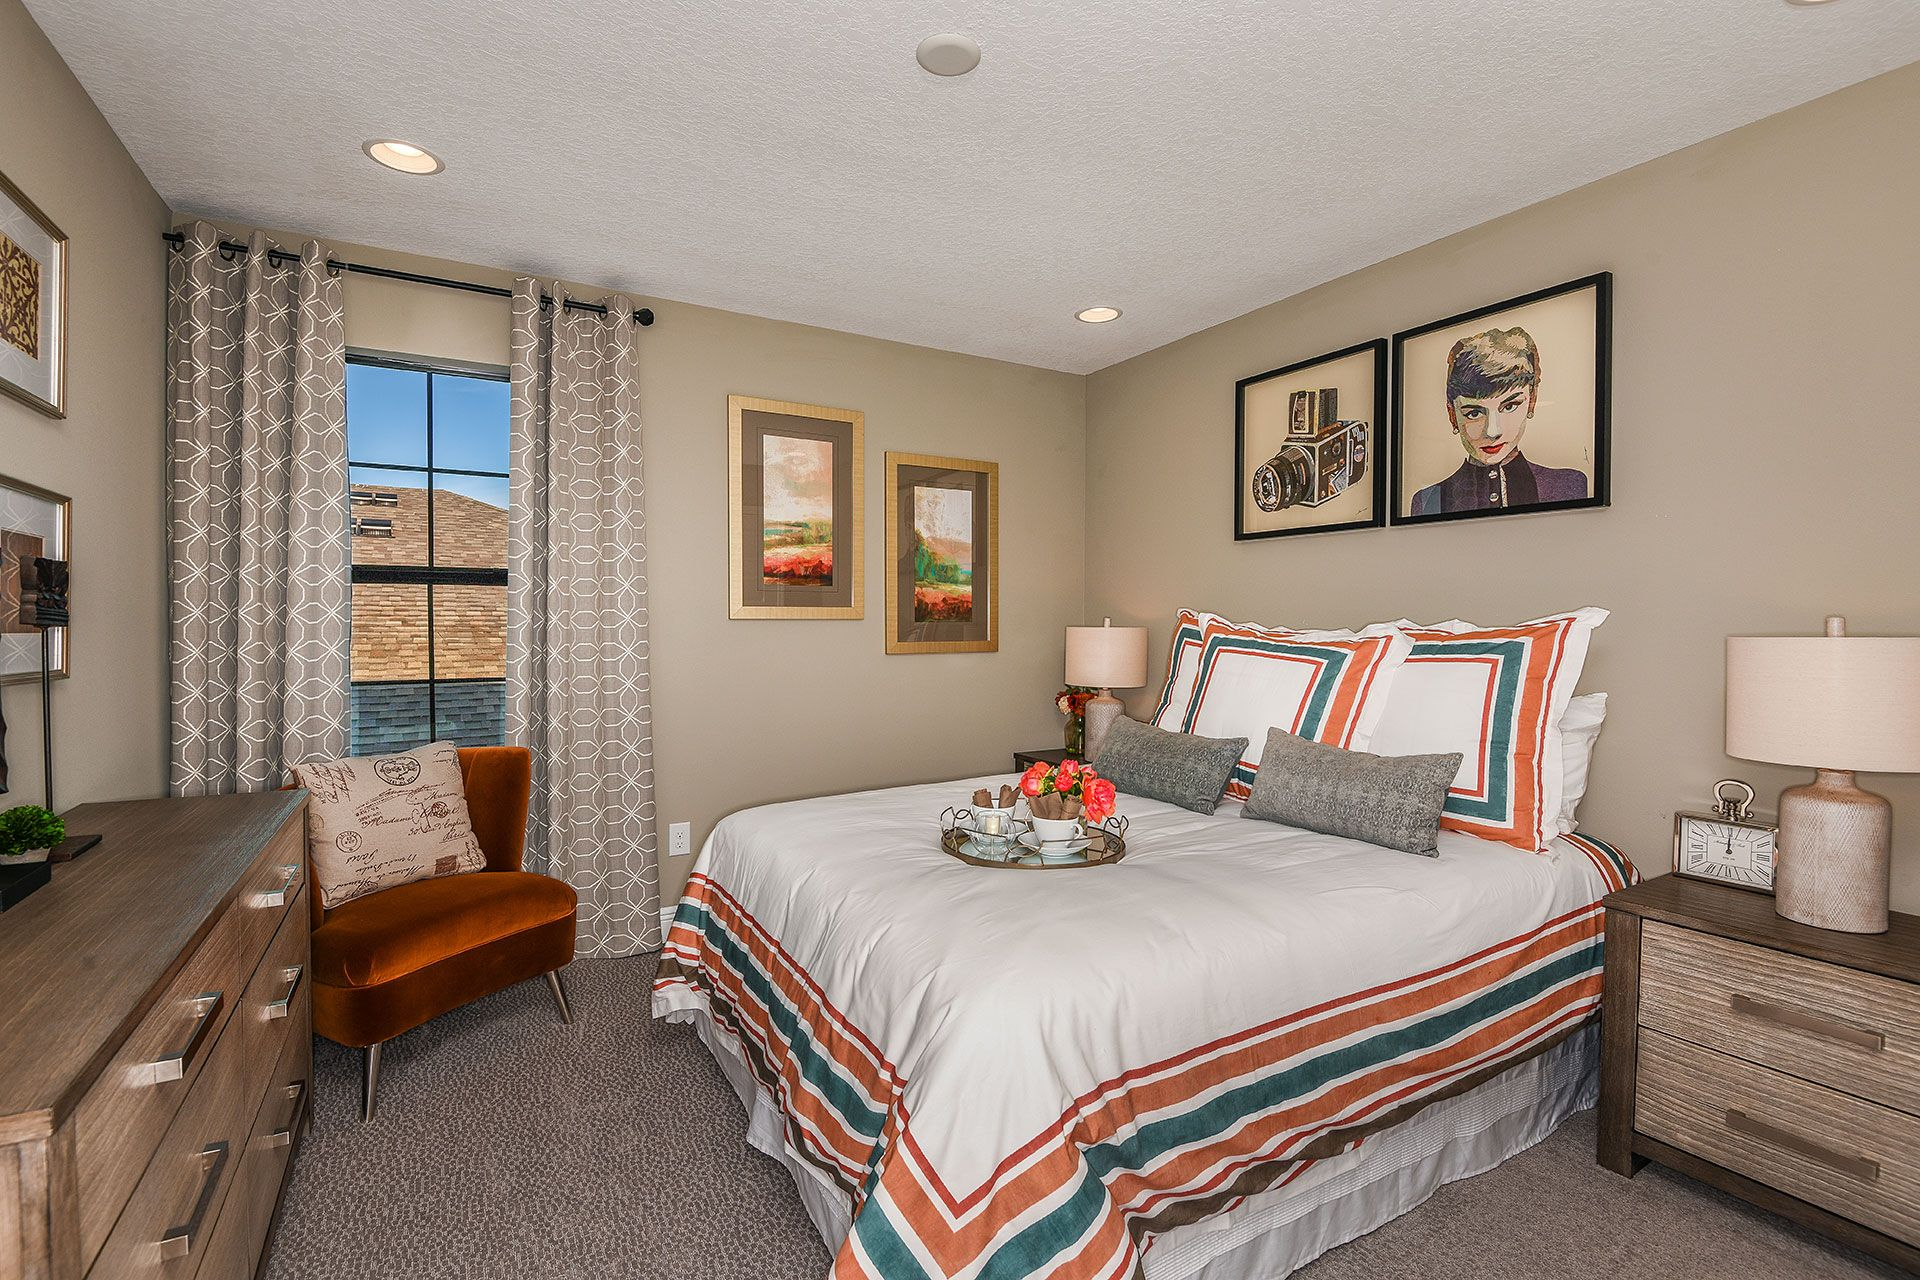 Bedroom featured in the Swann IV By Homes by WestBay in Tampa-St. Petersburg, FL